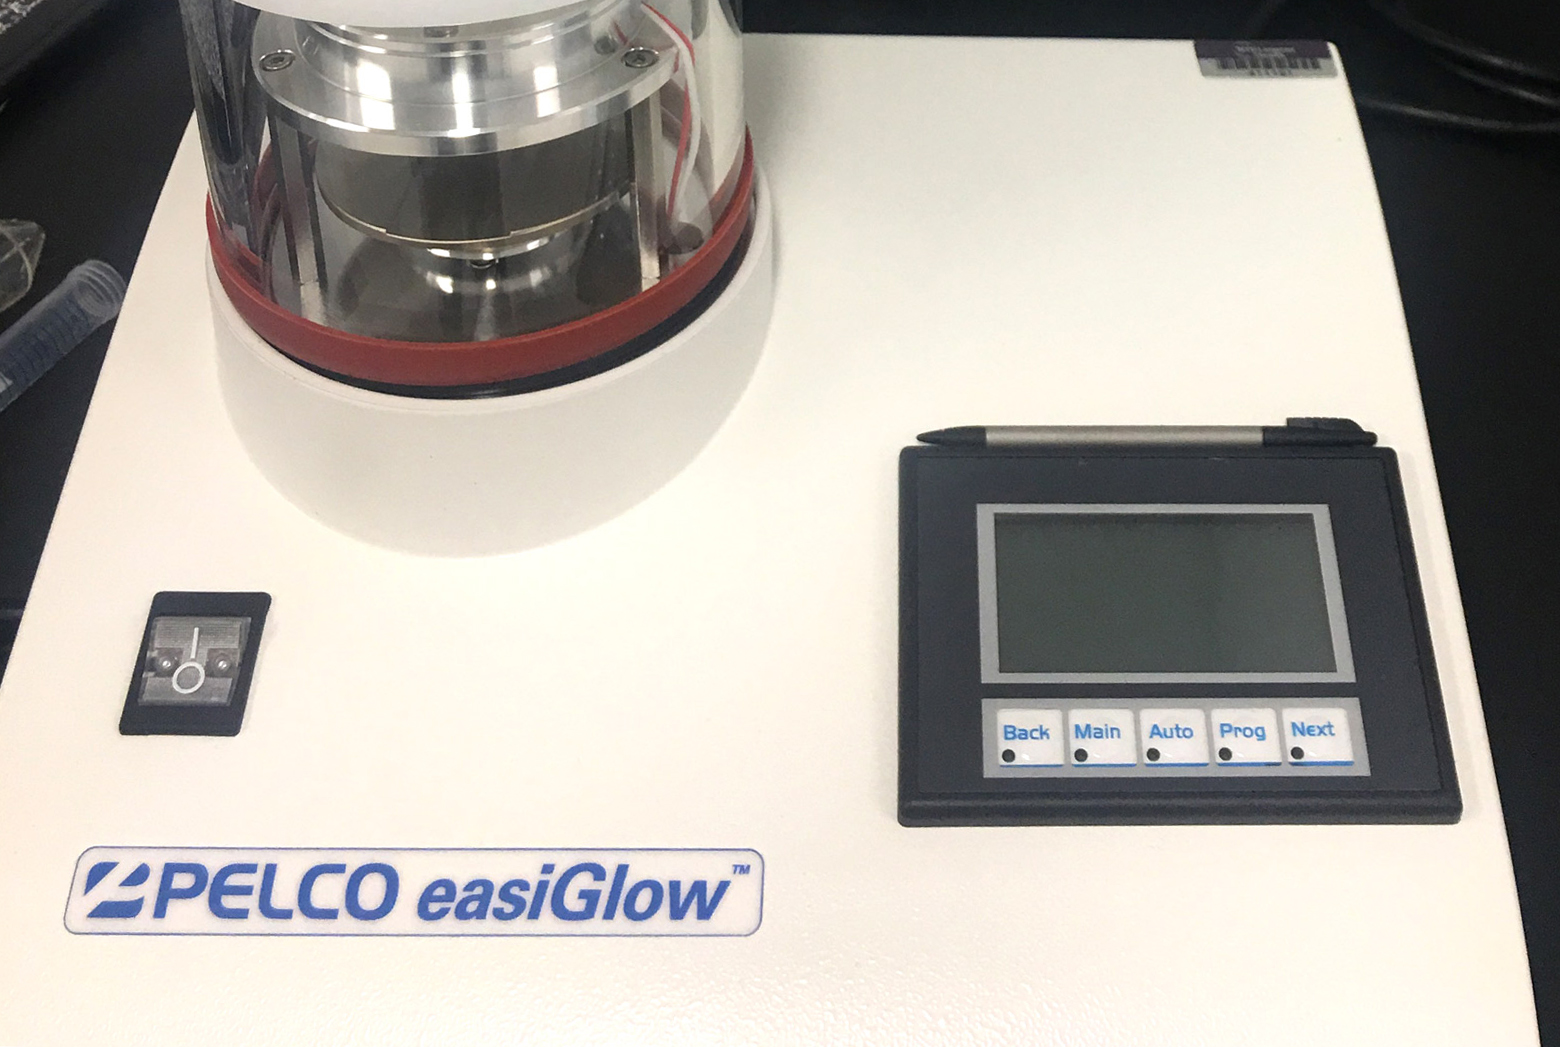 PELCO easiGlow Glow Discharge Cleaning System